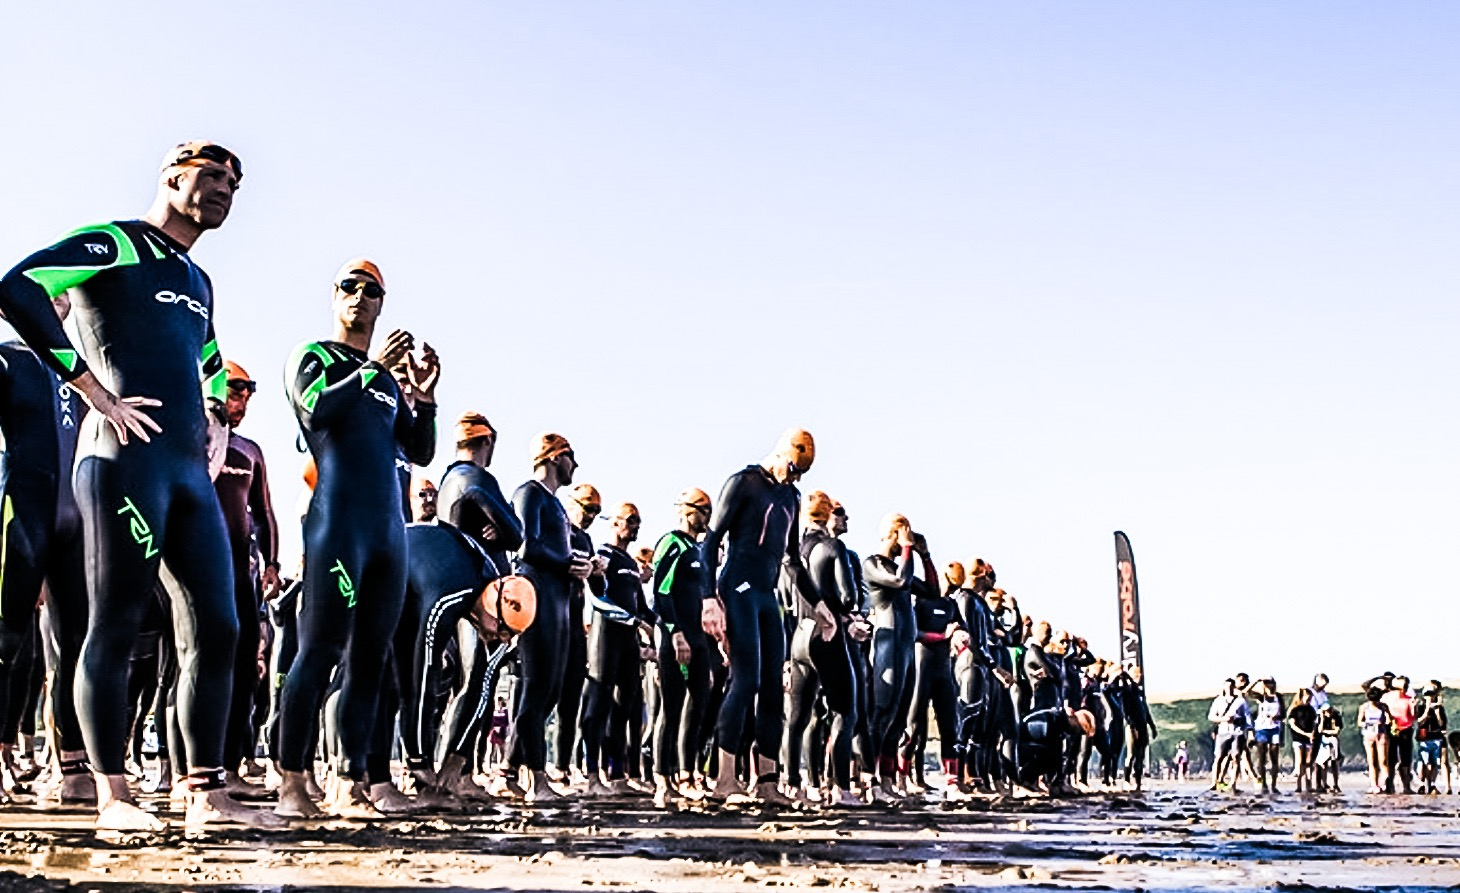 Sea Swim Triathlon Beach Start